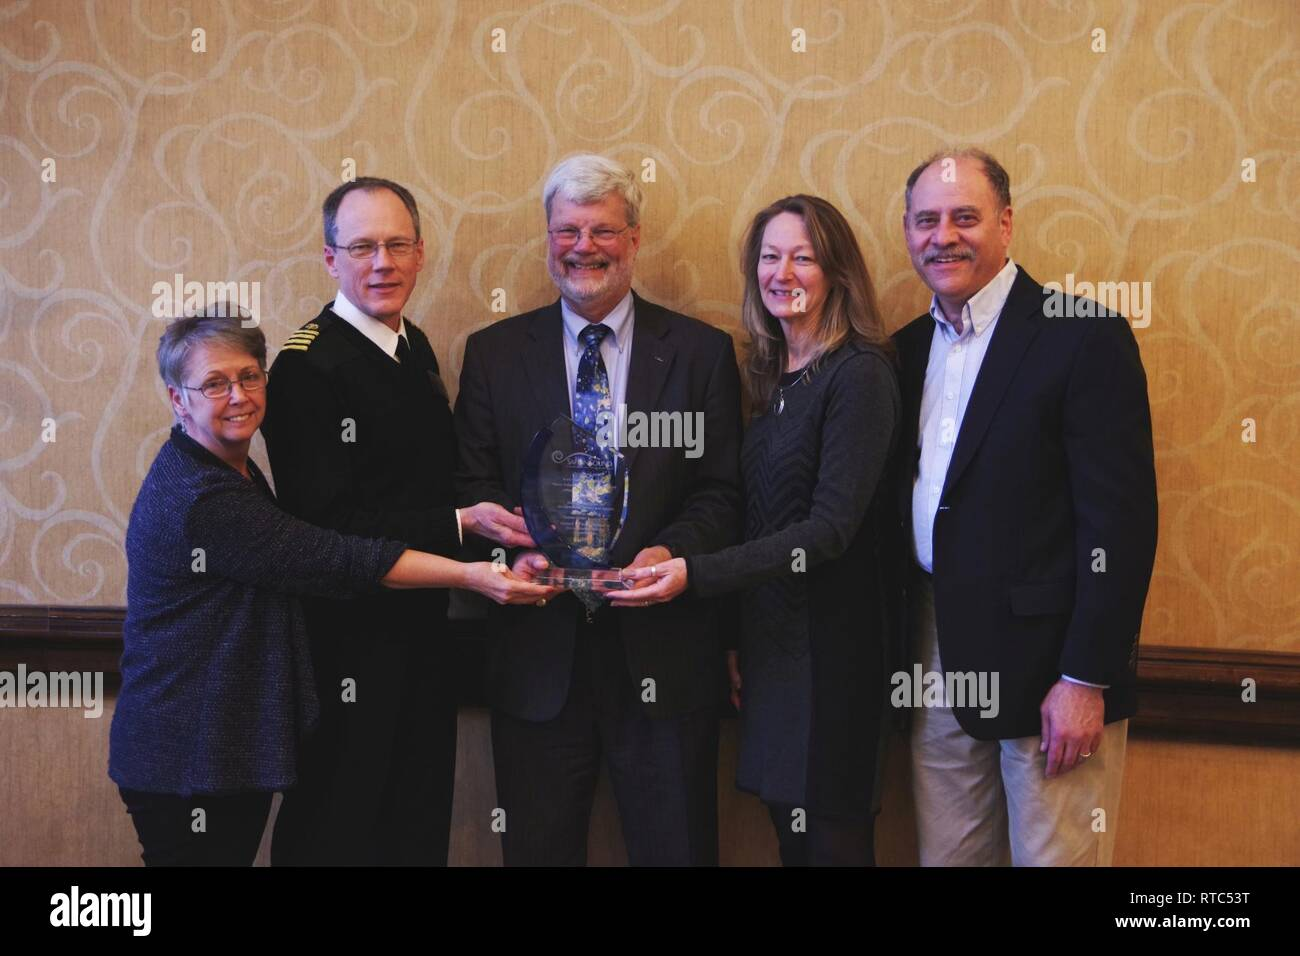 From left to right: Vickie Tuten (National Hearing Conservation Association); Capt., U.S. Public Health Service, David Byrne (National Institute for Occupational Safety and Health); Kurt Yankaskas (Office of Naval Research); Laurie Wells (Council for Accreditation in Occupational Hearing Conservation); and Scott Schneider (Safe-in-Sound Award). Yankaskas received the 2019 Safe-in-Sound Excellence in Hearing Loss Prevention Award for his work managing ONR's Noise-Induced Hearing Loss program. ( - Stock Image